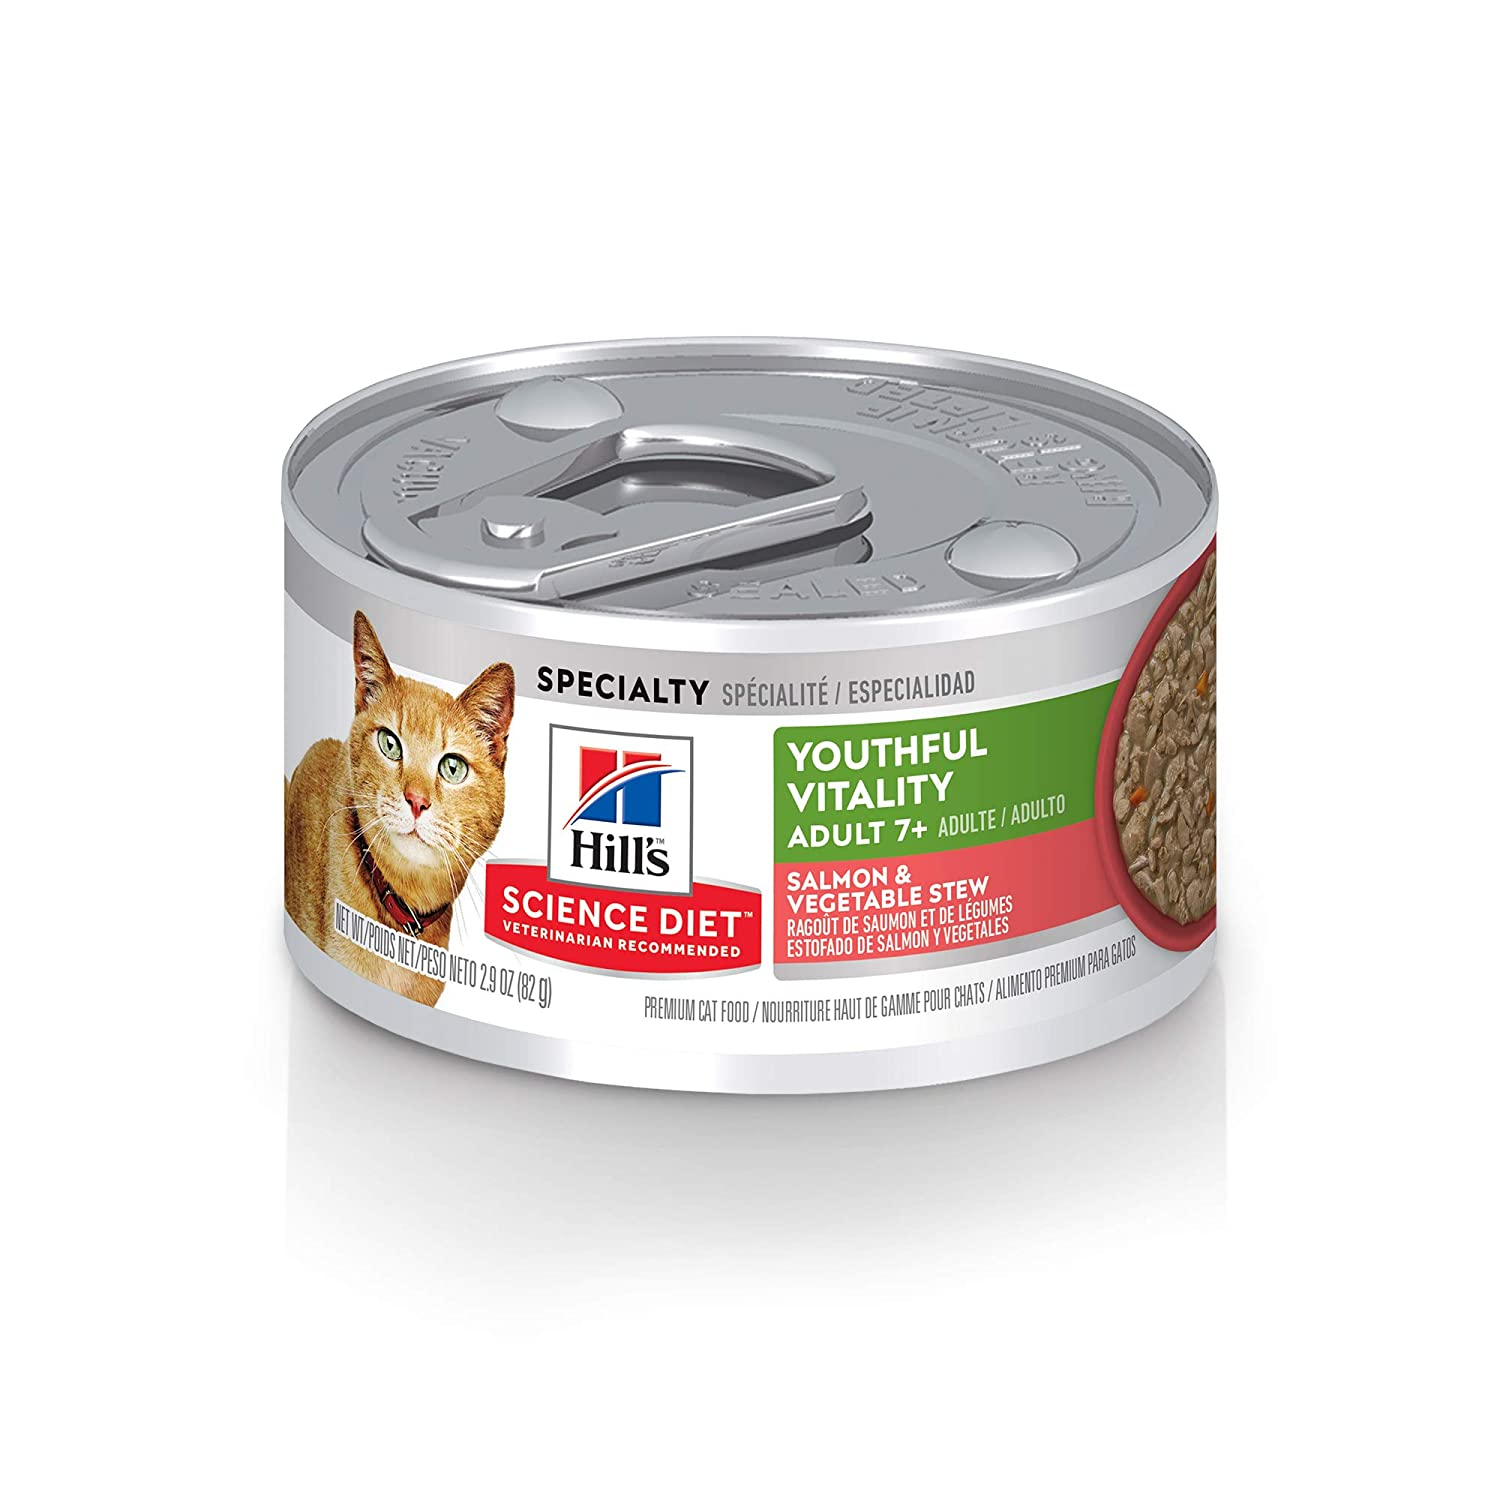 Hills Science Diet Wet Cat Food, Adult 7+ for Senior Cats, Youthful Vitality, Pack of 24